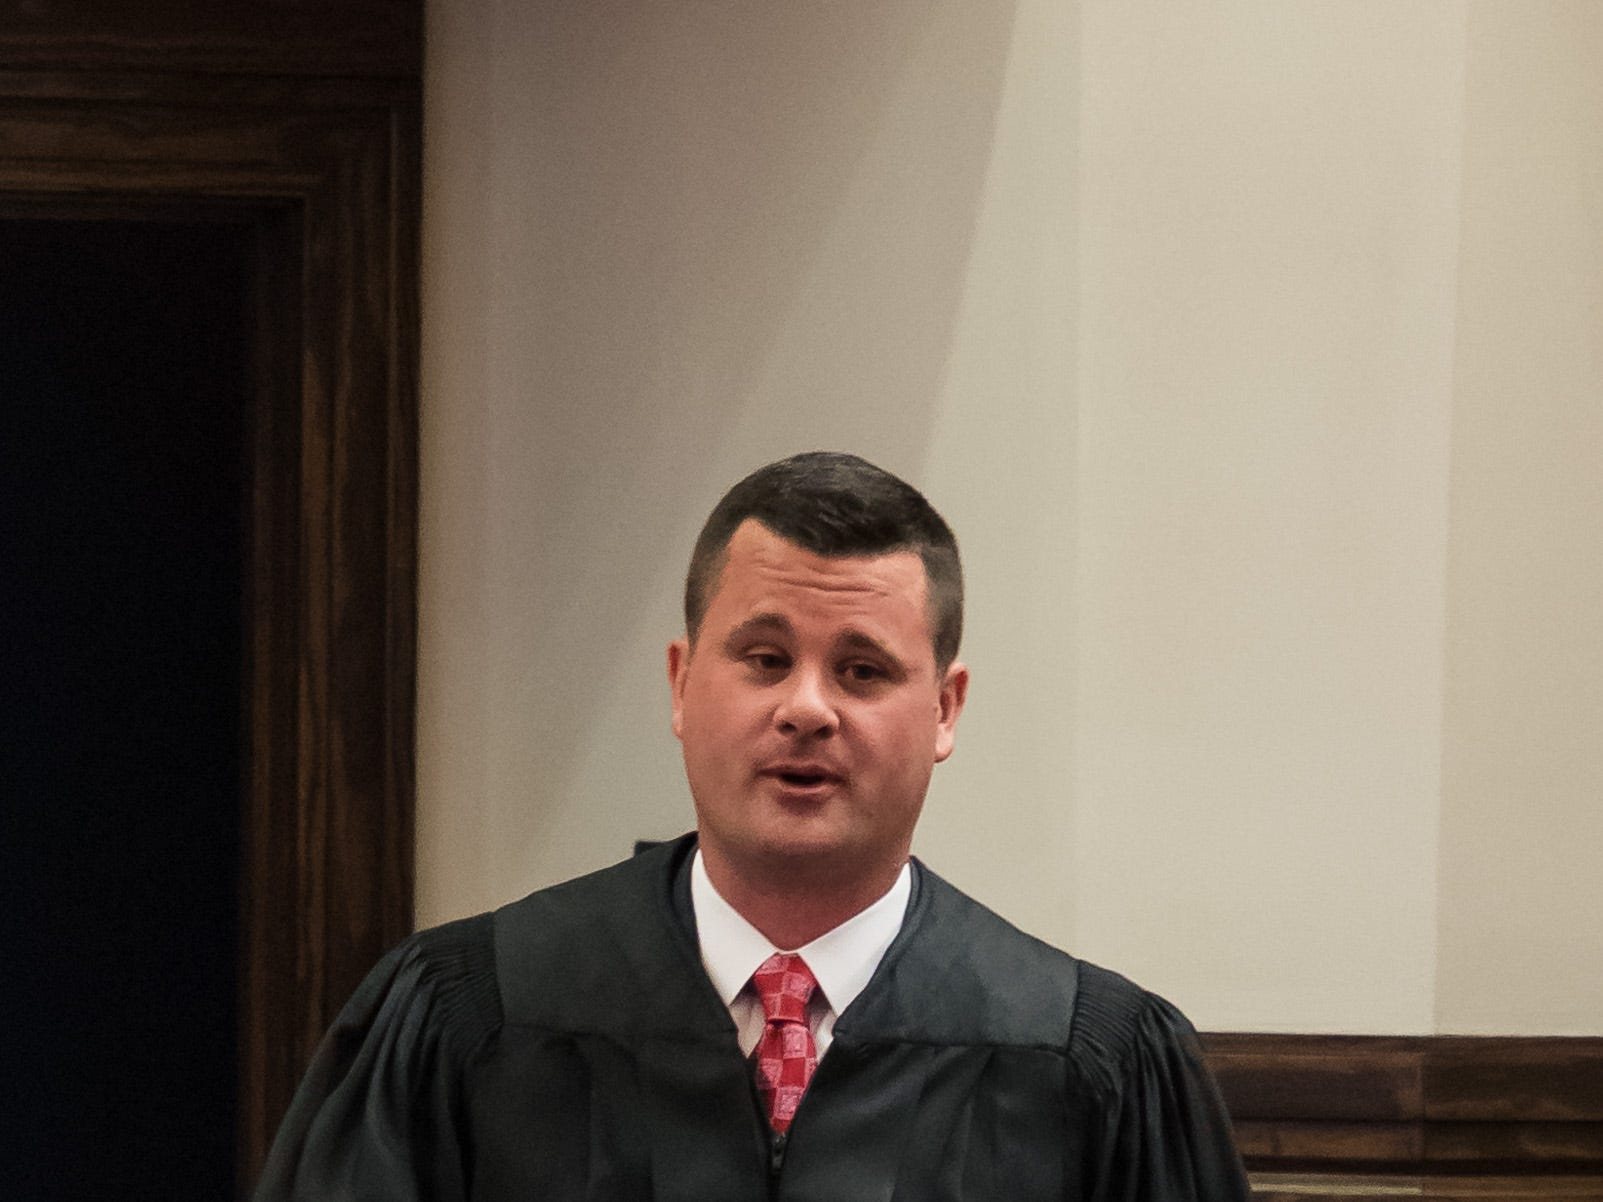 Lamar County Court and Youth Court Judge Brad Touchstone delivers a few remarks during his investiture ceremony in Purvis on Wednesday, Jan. 2, 2019.